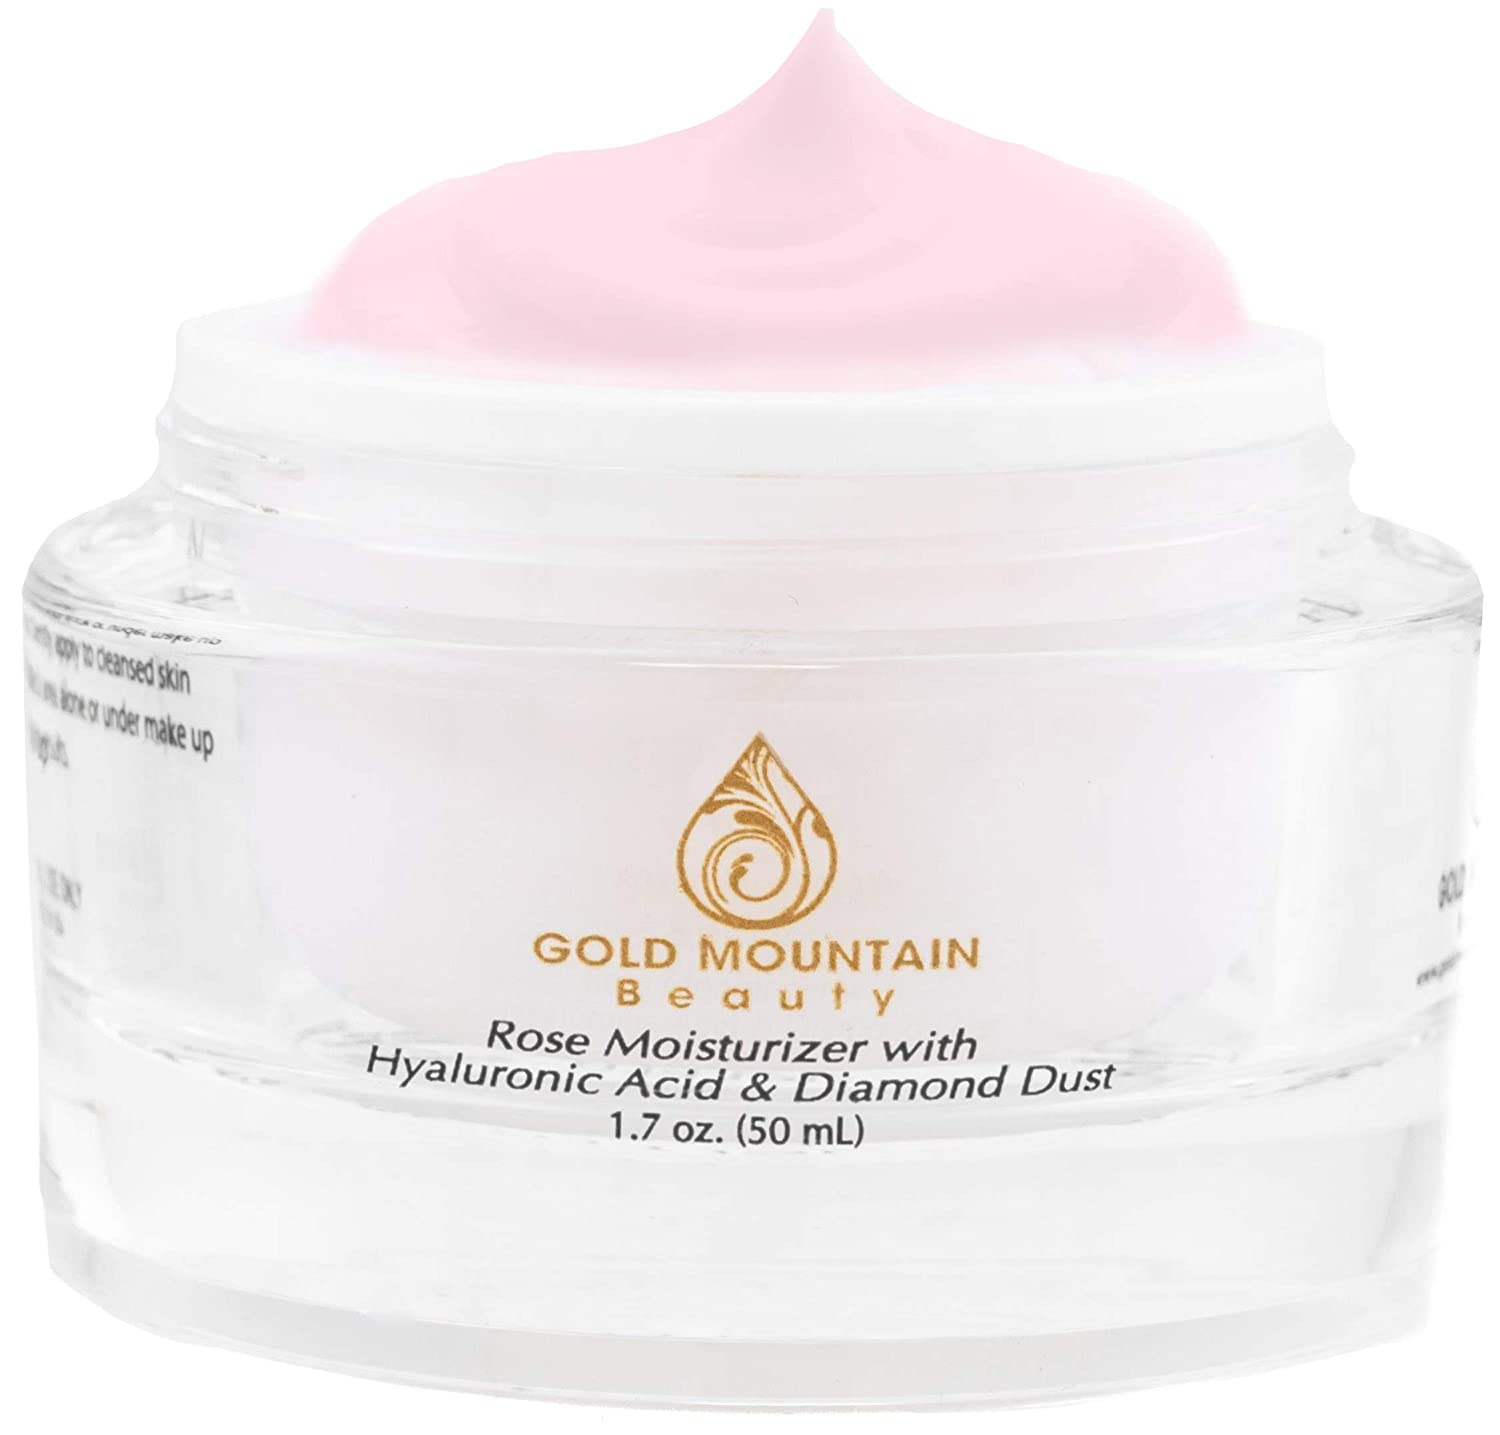 Anti Aging Face Cream Moisturizer - with Rose Scent, Hyaluronic Acid and Diamond Dust, Anti-Aging Anti-Wrinkle Night Cream for Woman and Men, Skin Care